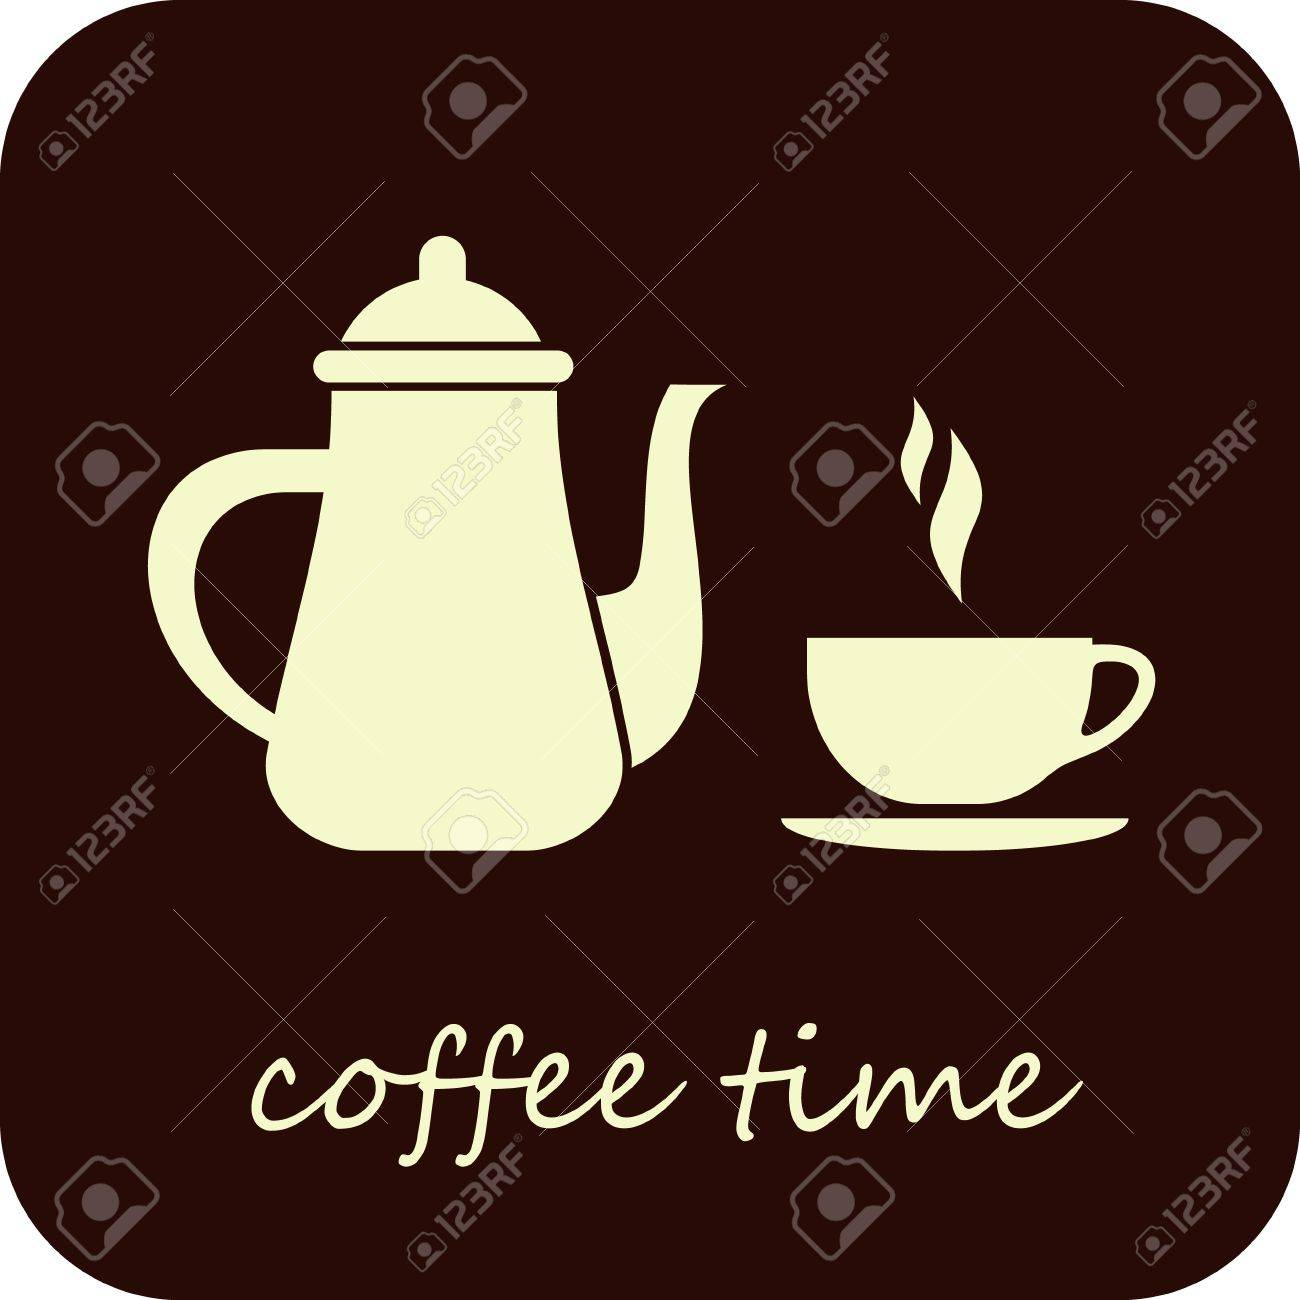 Coffee Time - isolated vector illustration. Coffee pot and cup of hot coffee on dark brown background. Stock Vector - 10827759